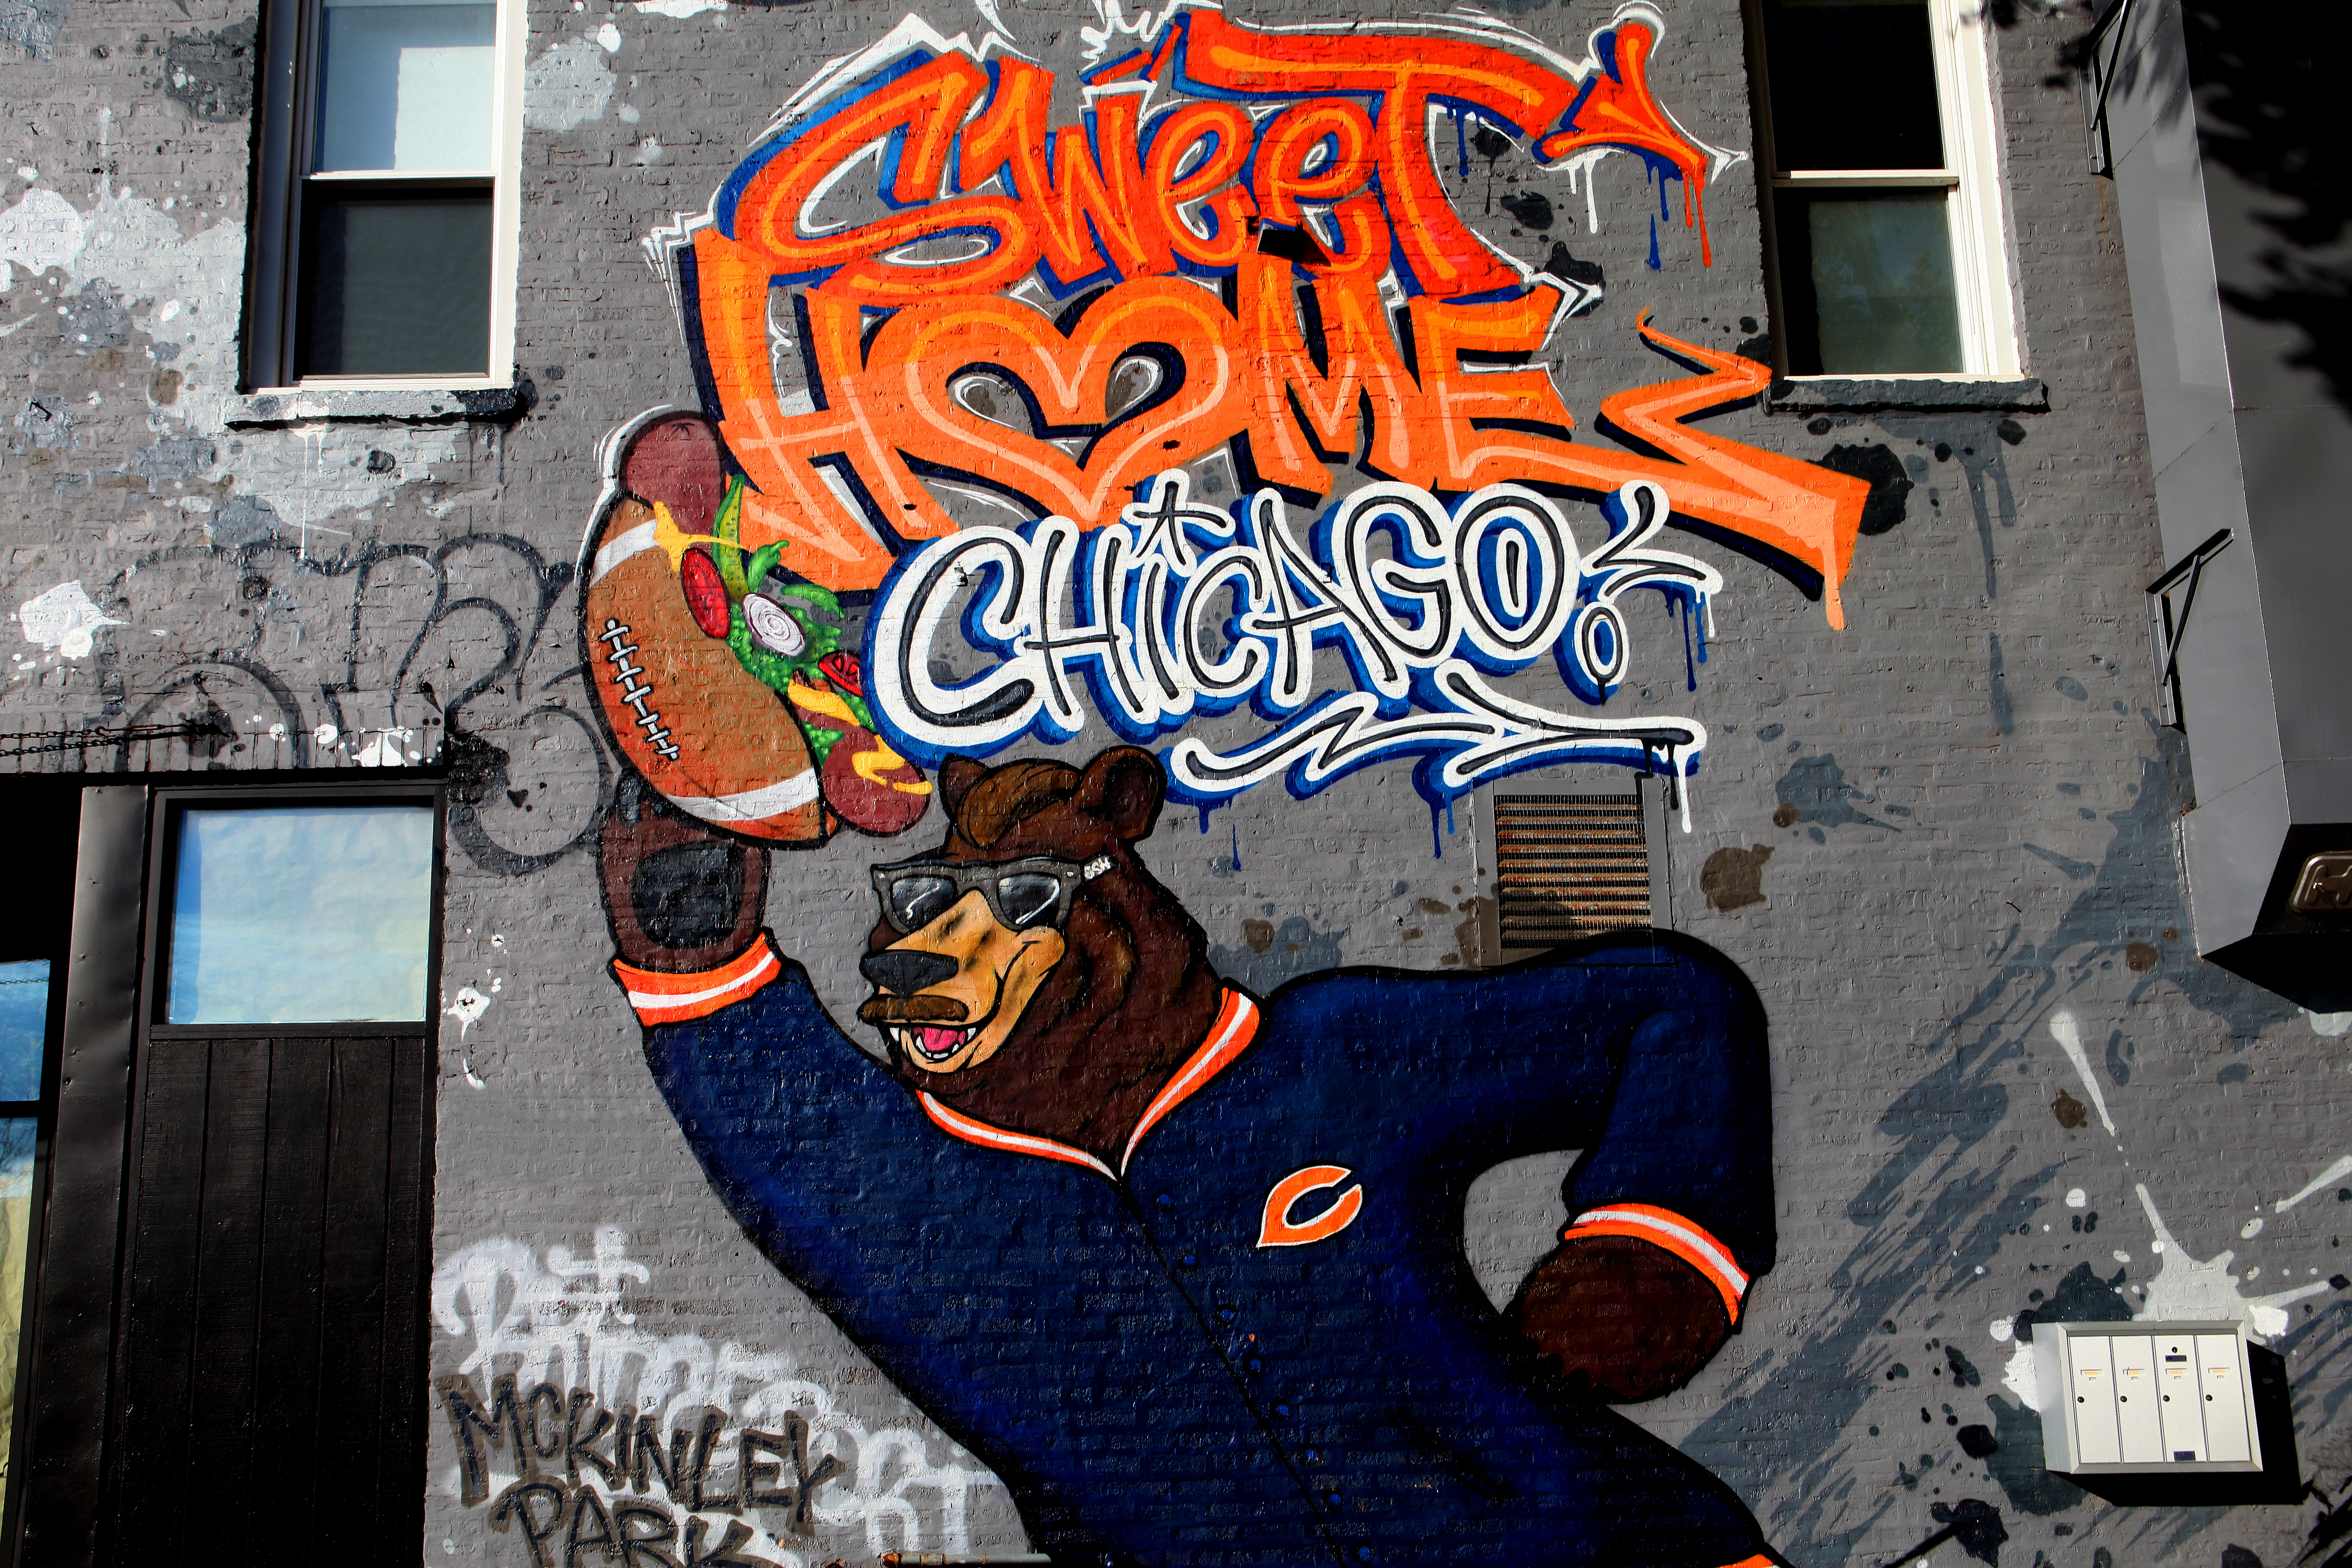 A mural of a brown bear in a navy blue Chicago Bears sweater holding a hot dog with a football for a bun